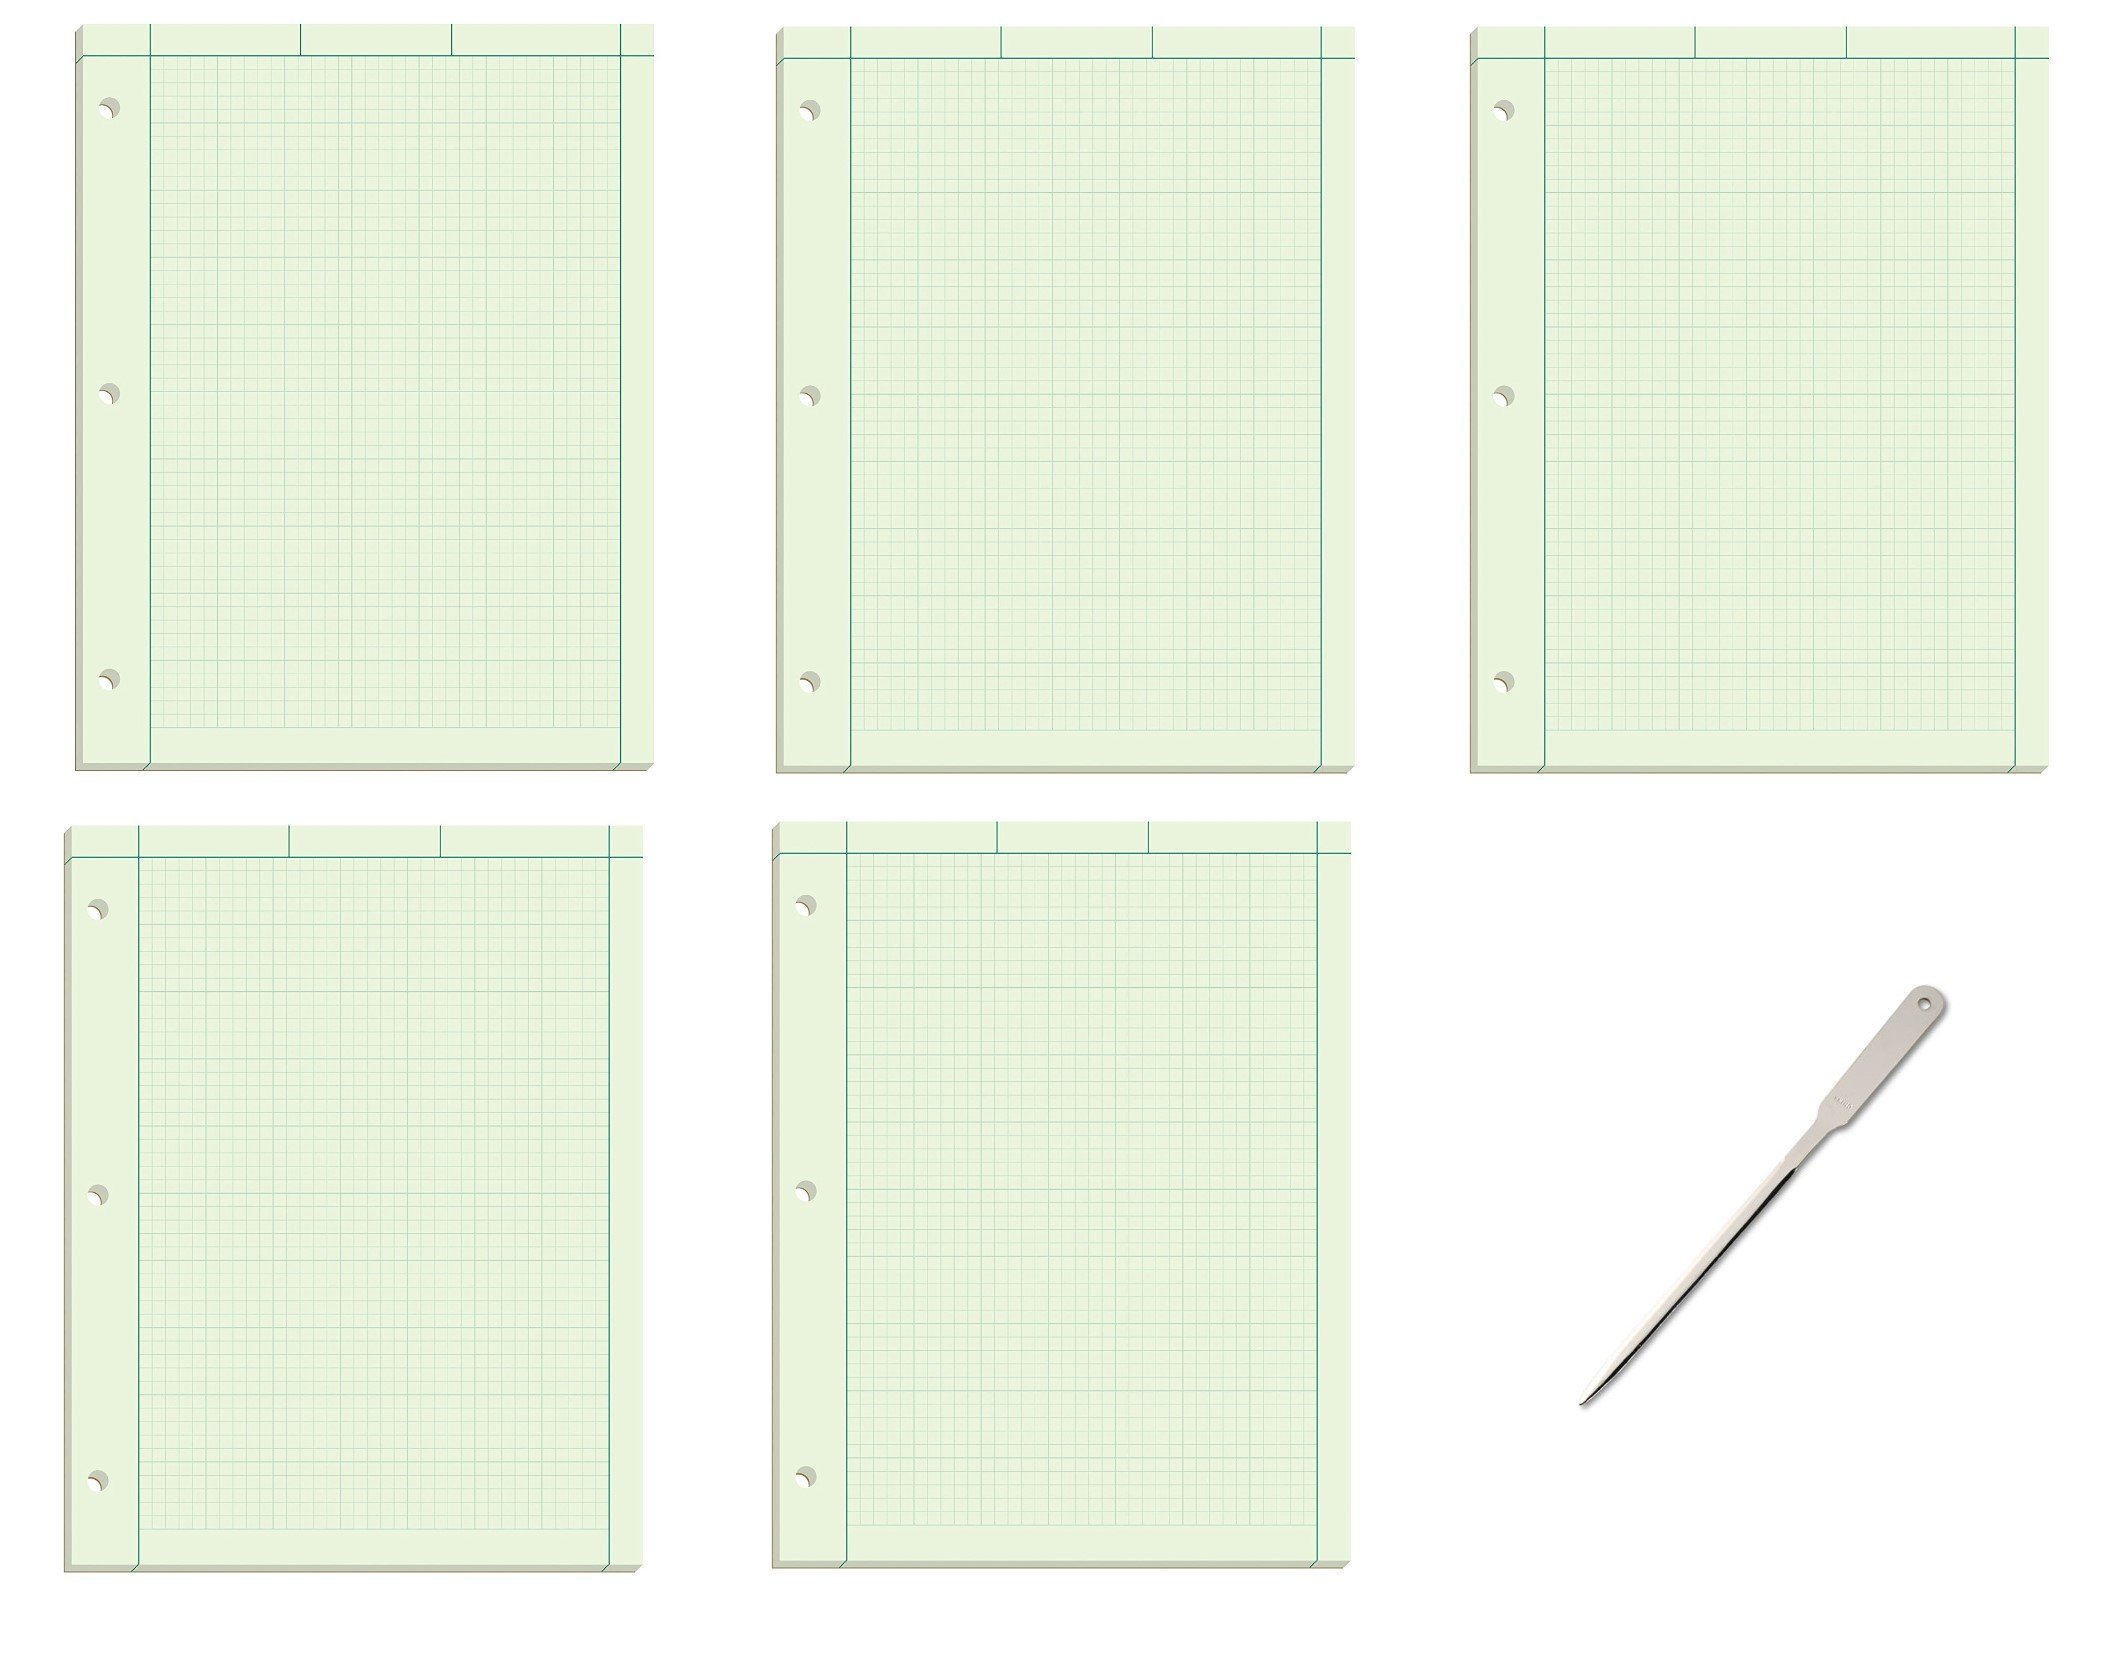 Ampad Evidence Engineering Pad, 100 Sheets, 5 Squares Per Inch, Green Tint, 11'' H x 8 1/2 W, Pack Of 5 (22-142) - Bundle Includes Universal Letter Opener by Ampad (Image #1)